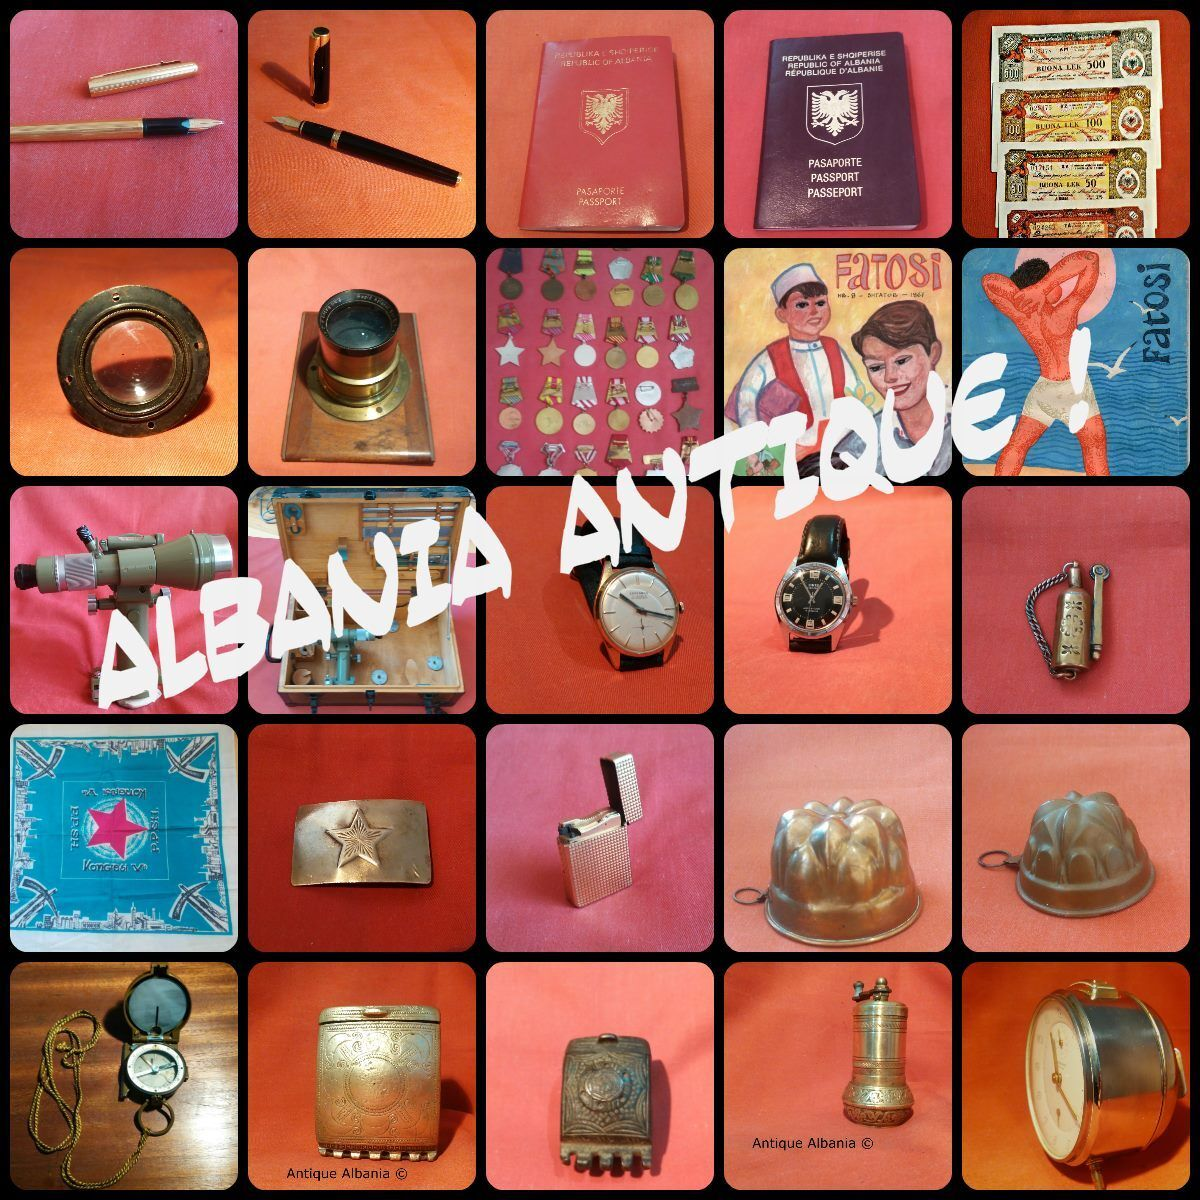 Antique Albania